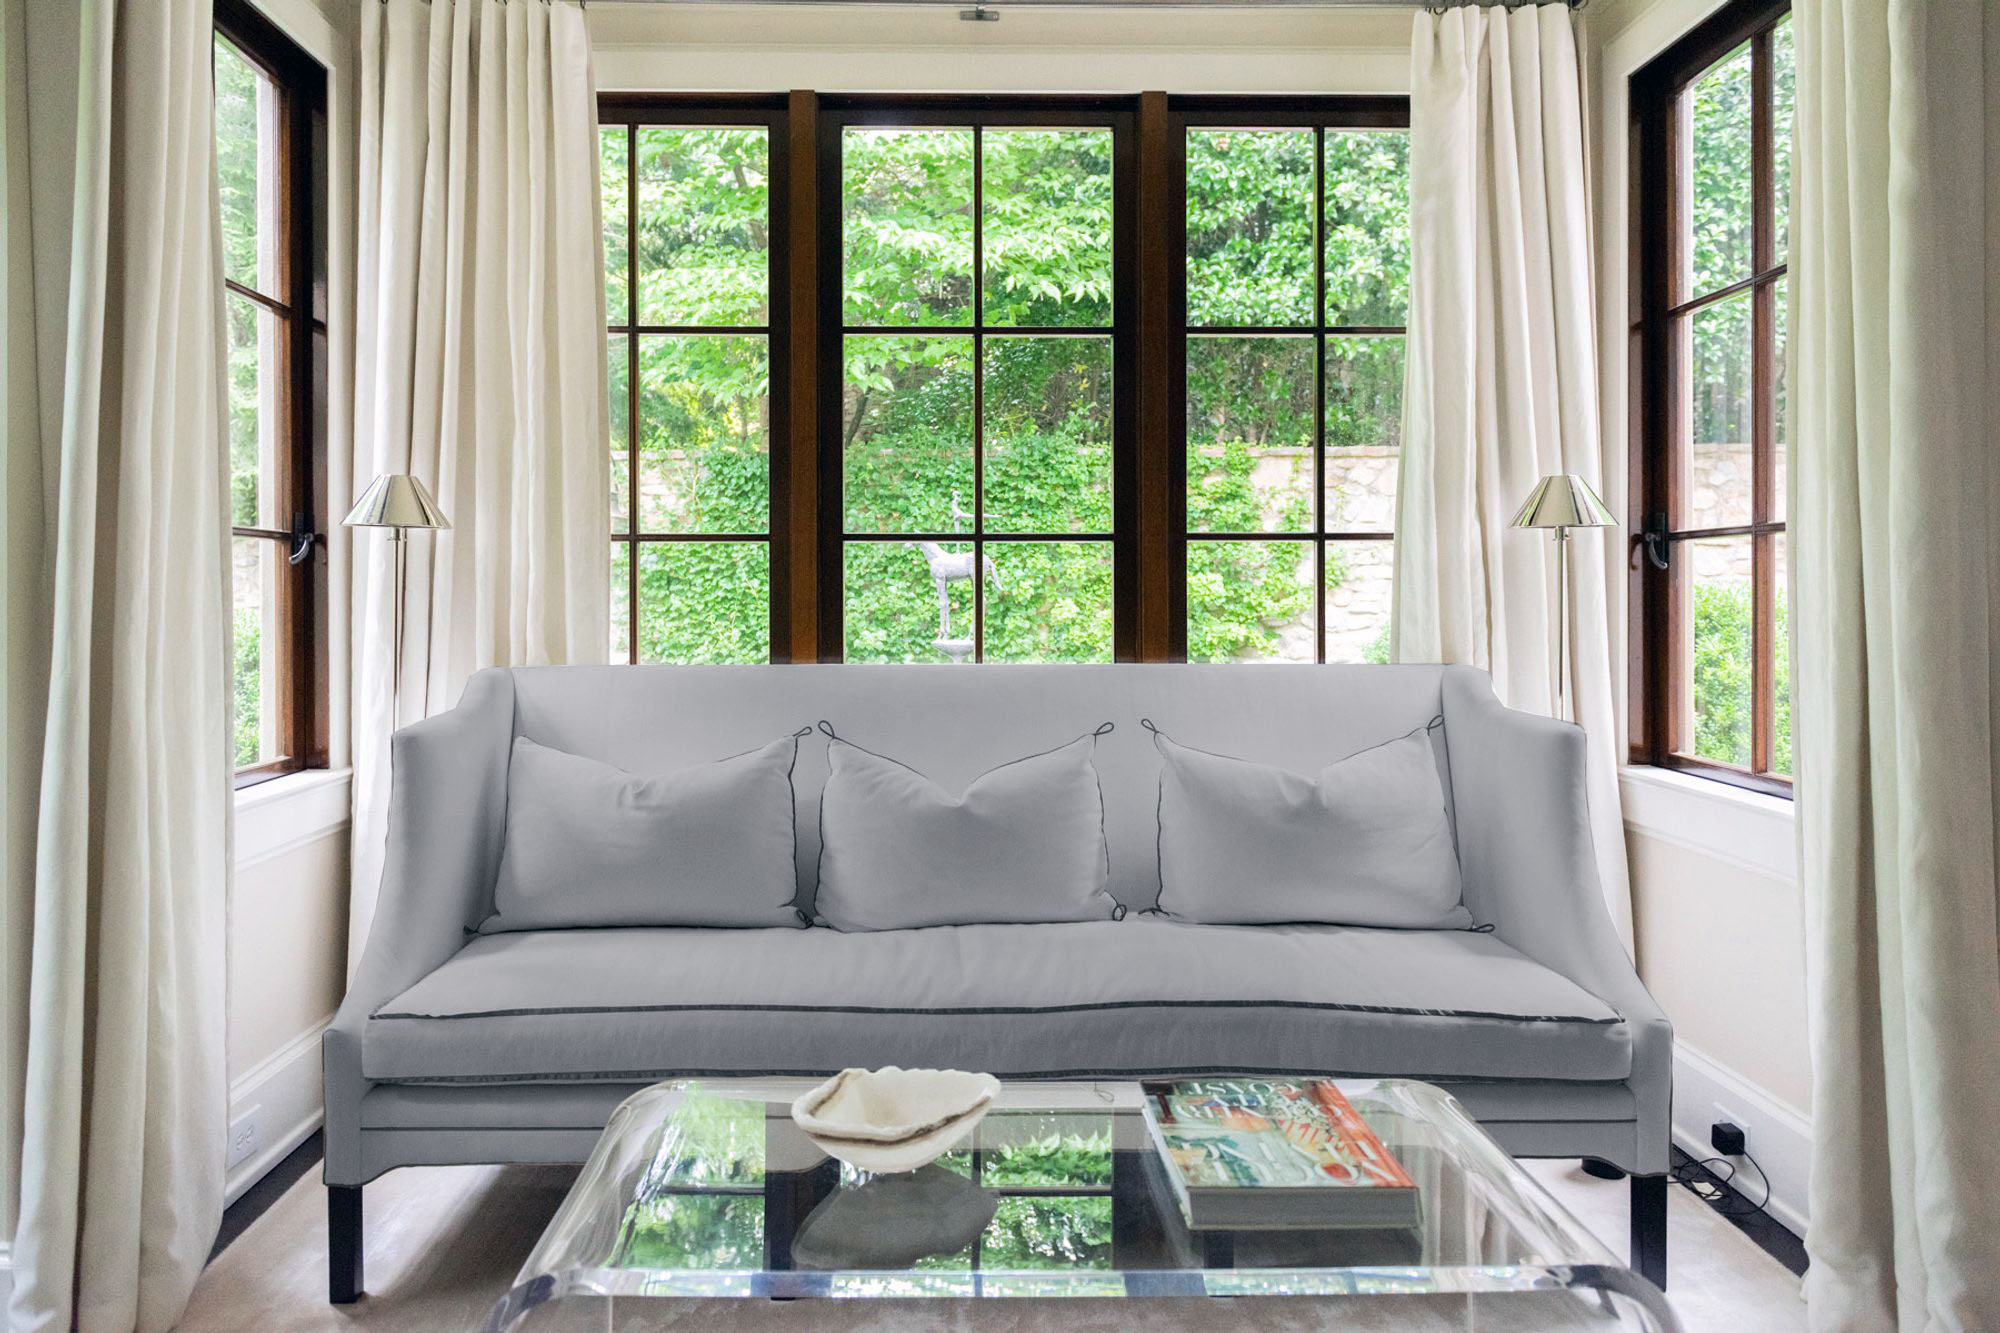 Light grey couch with a cream colored thin composite fiber rug.